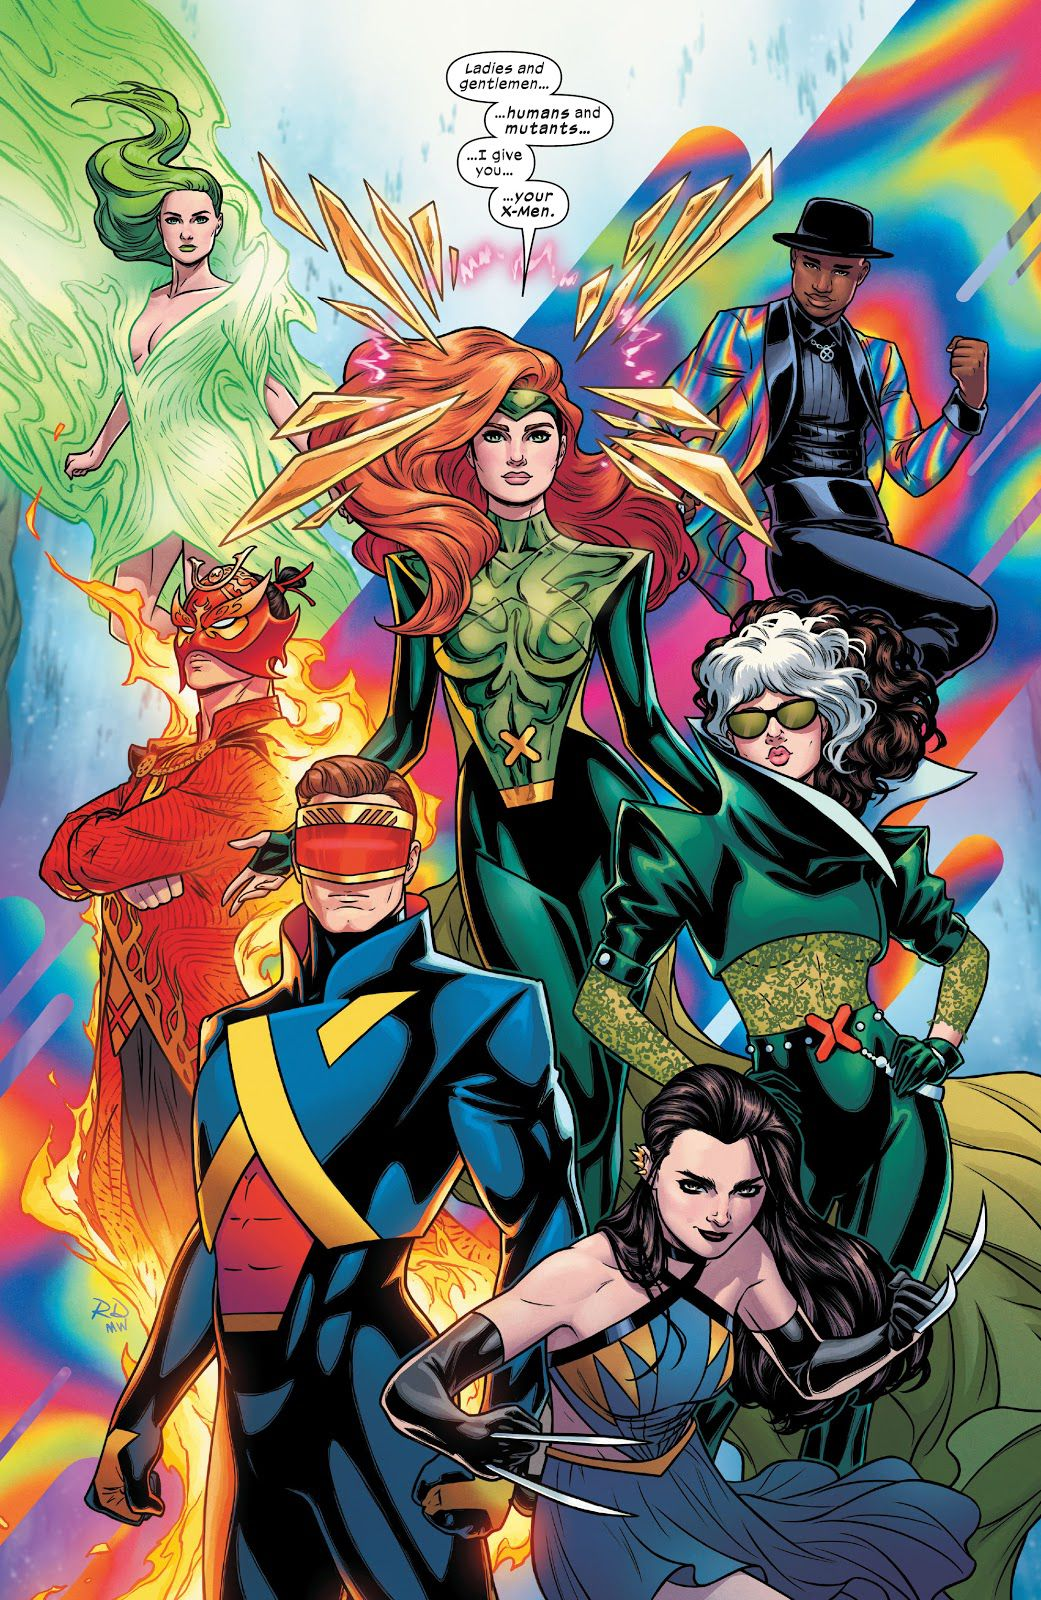 Jean Grey introduces the rest of the X-Men, consisting of Cyclops, Rogue, Laura Kinney/X-23/Wolverine, Sunfire, Polaris, and Synch, in X-Men #21, (2021).